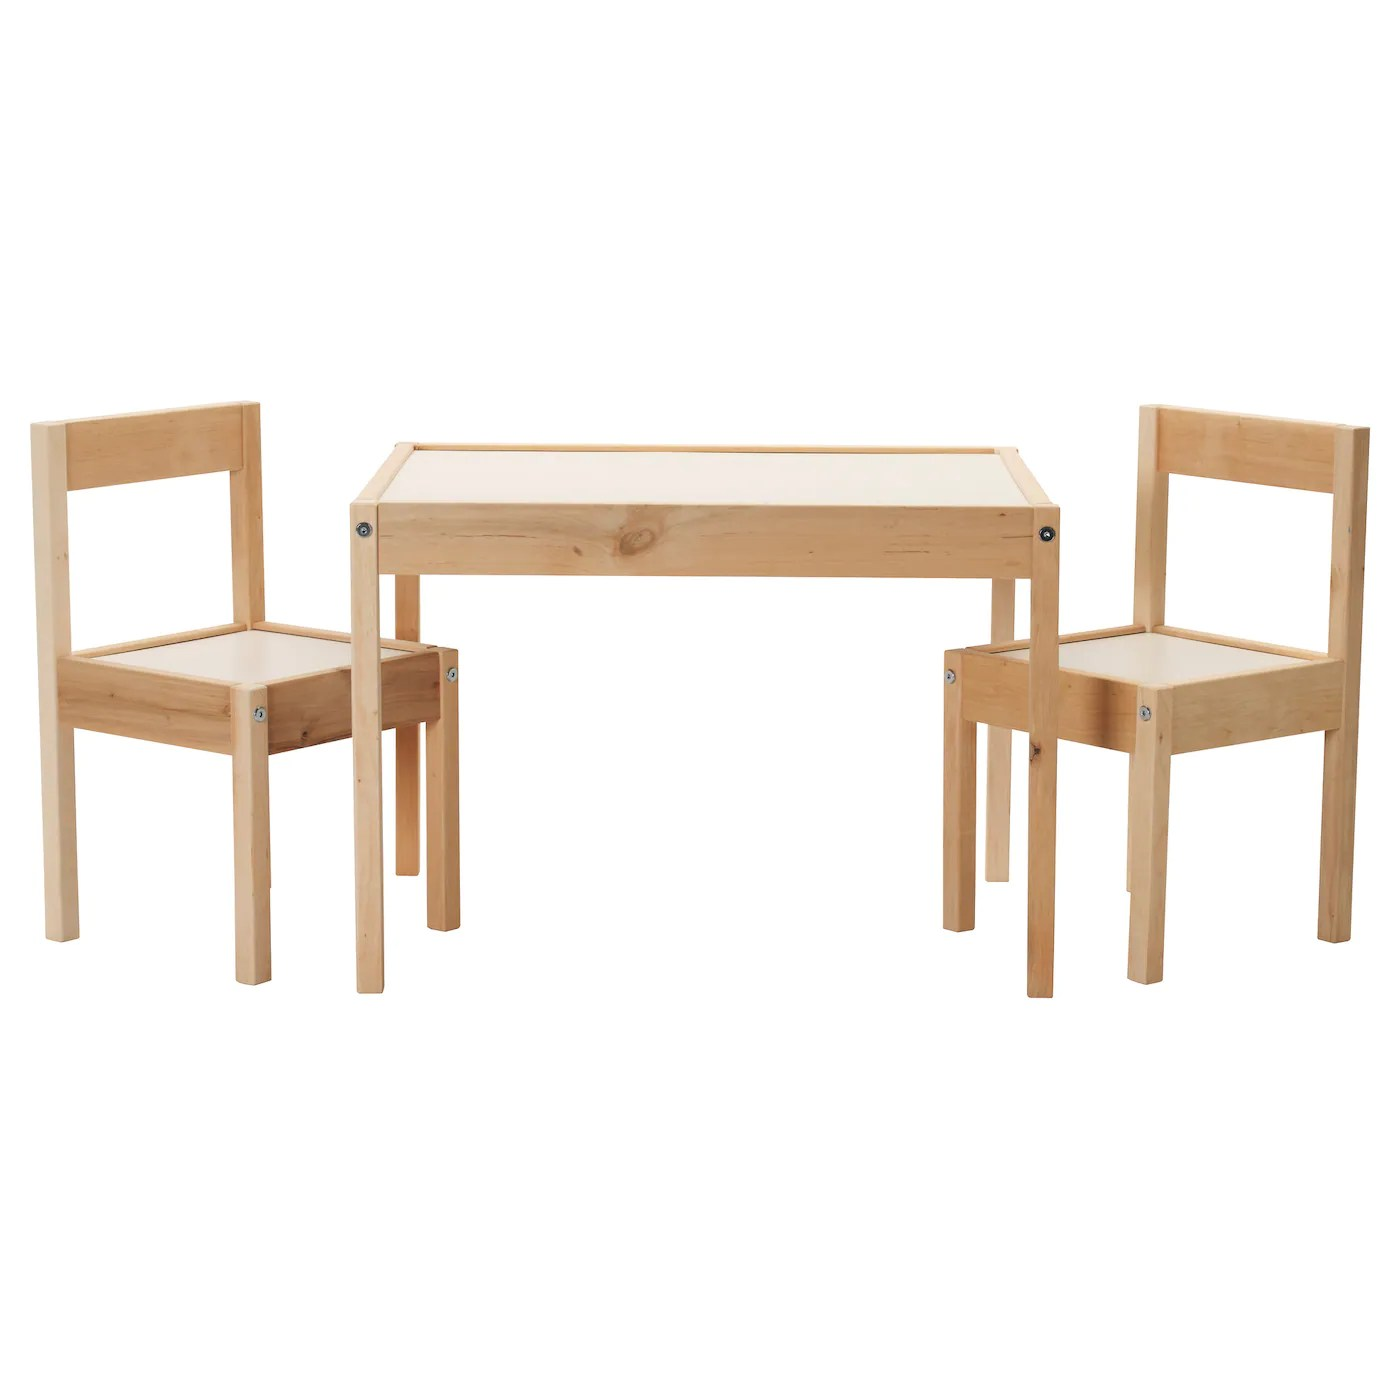 Childrens Wooden Table And Chairs LÄtt Children S Table With 2 Chairs White Pine